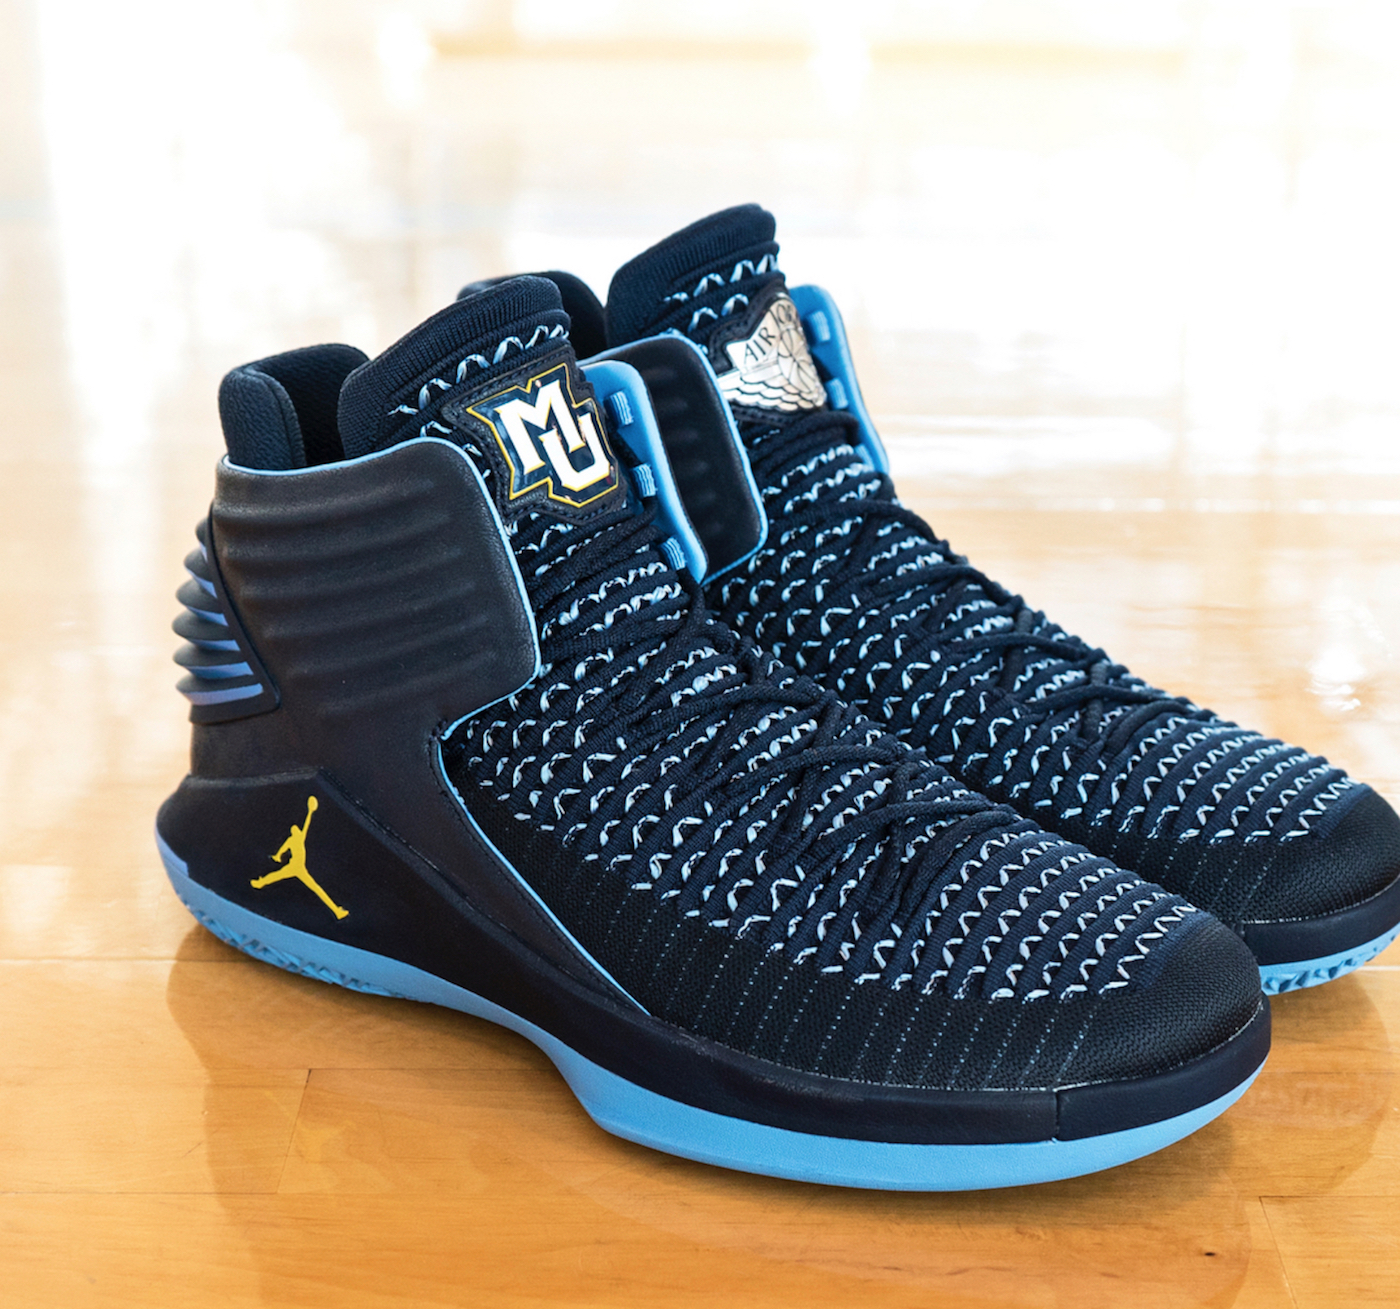 air jordan 32 marquette university PE 3